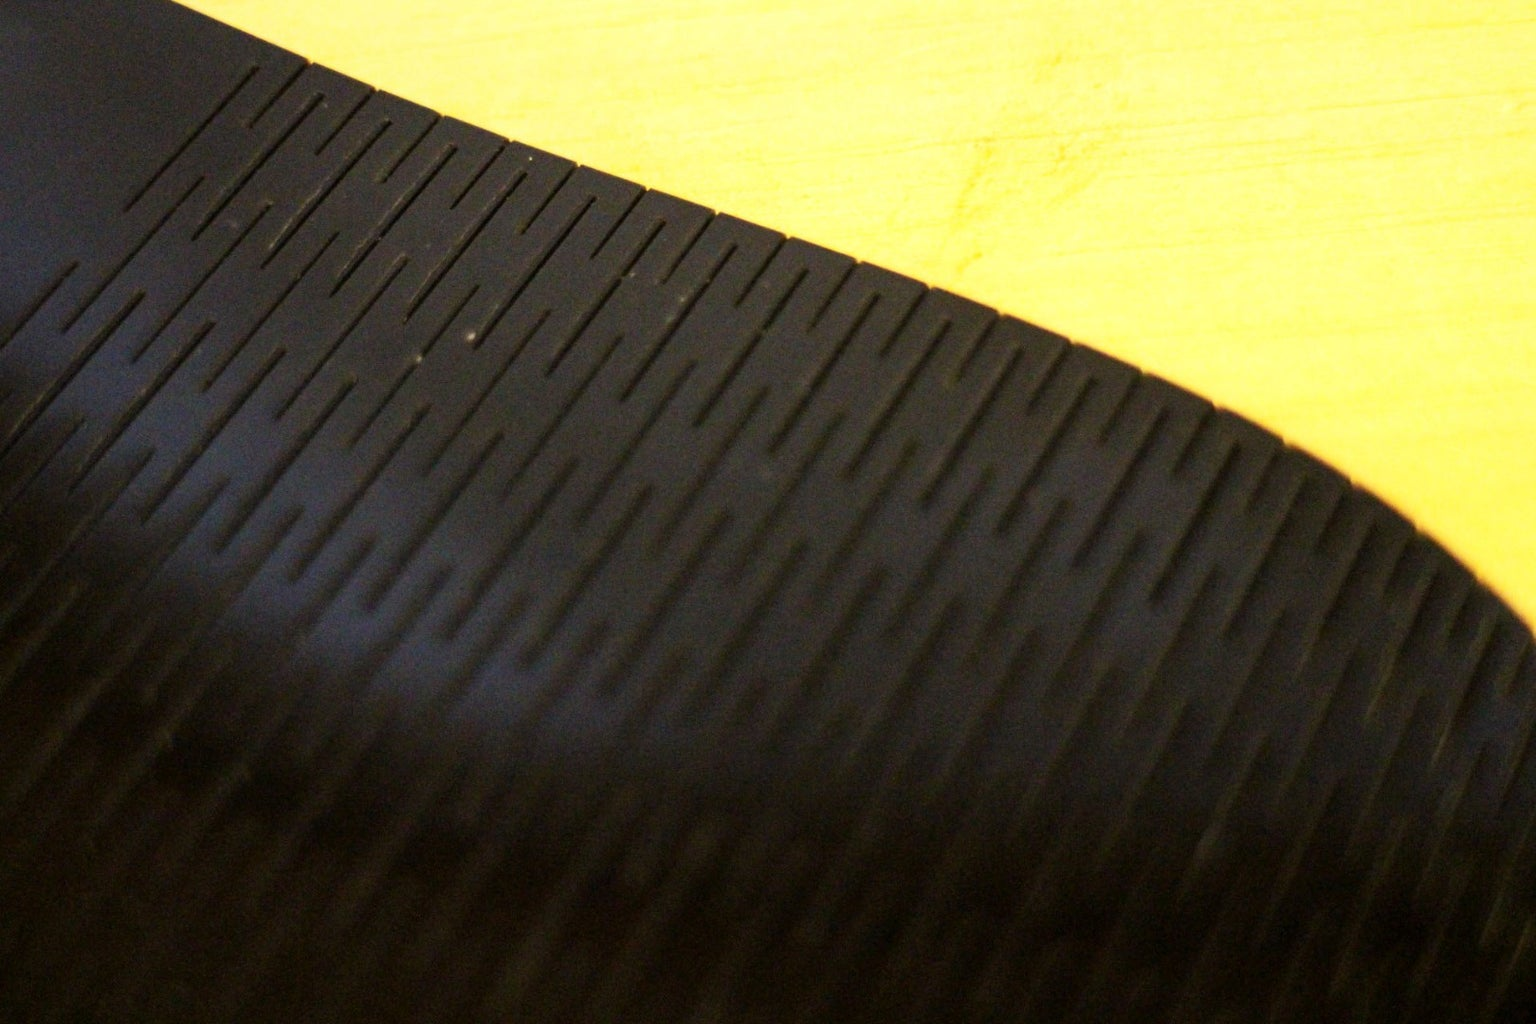 Kerf and Material Thickness